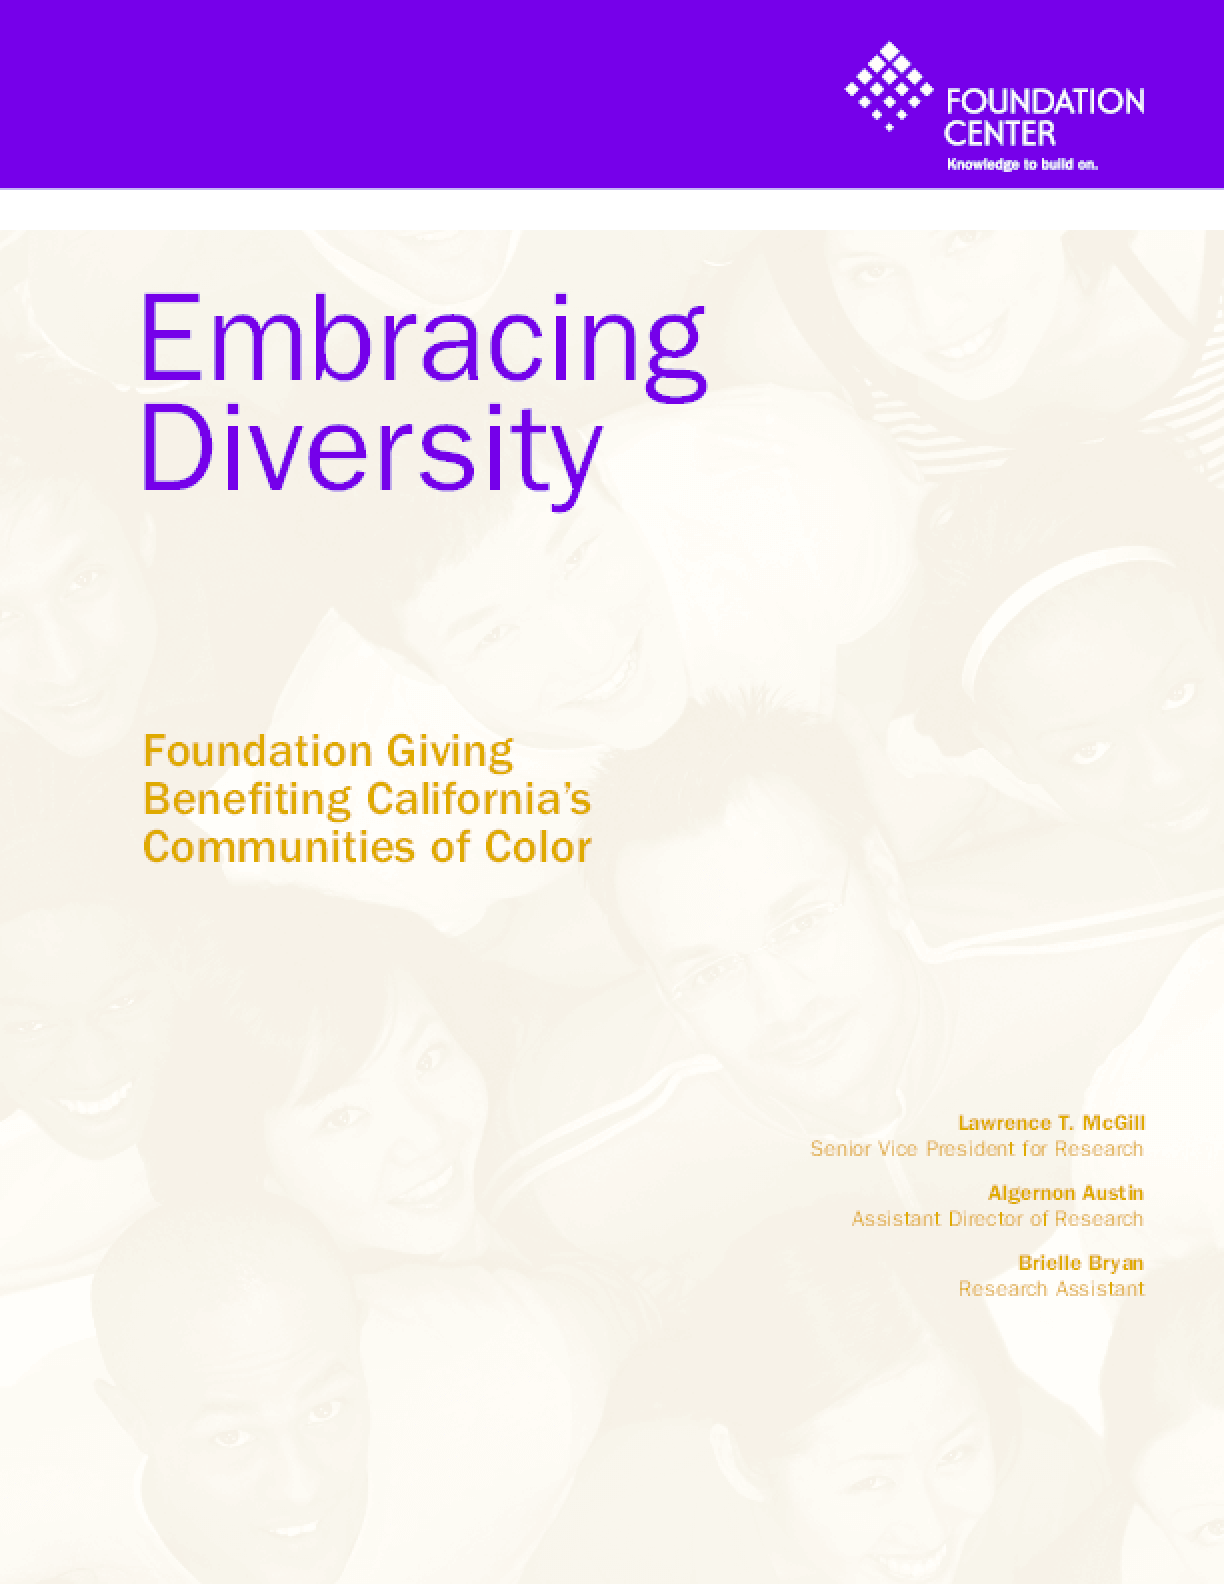 Embracing Diversity: Foundation Giving Benefiting California's Communities of Color